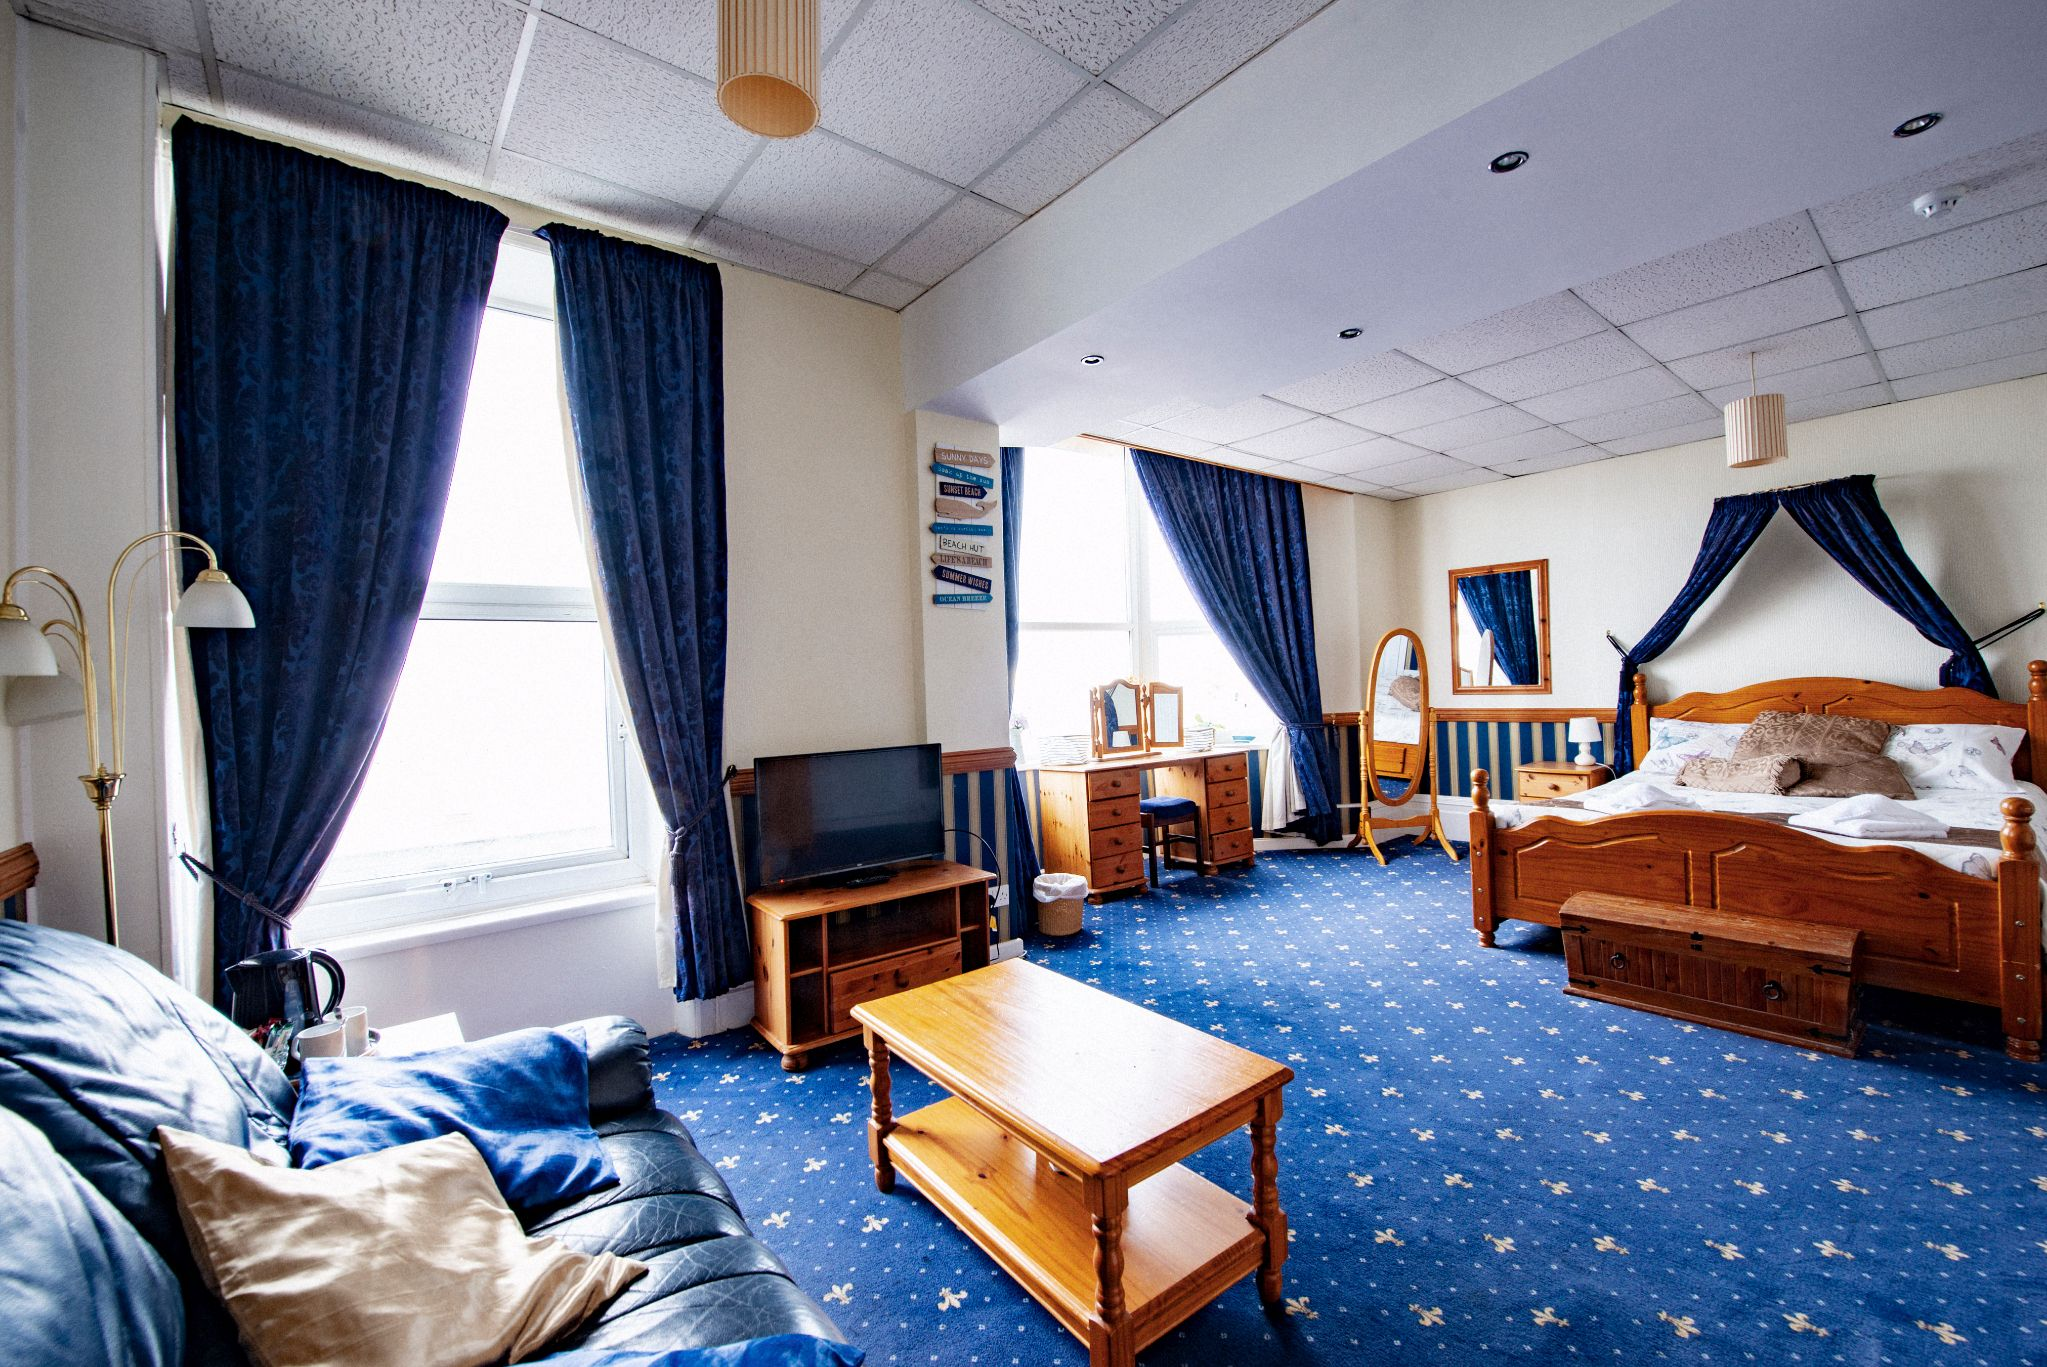 30 Bedroom Hotel For Sale - Photograph 18